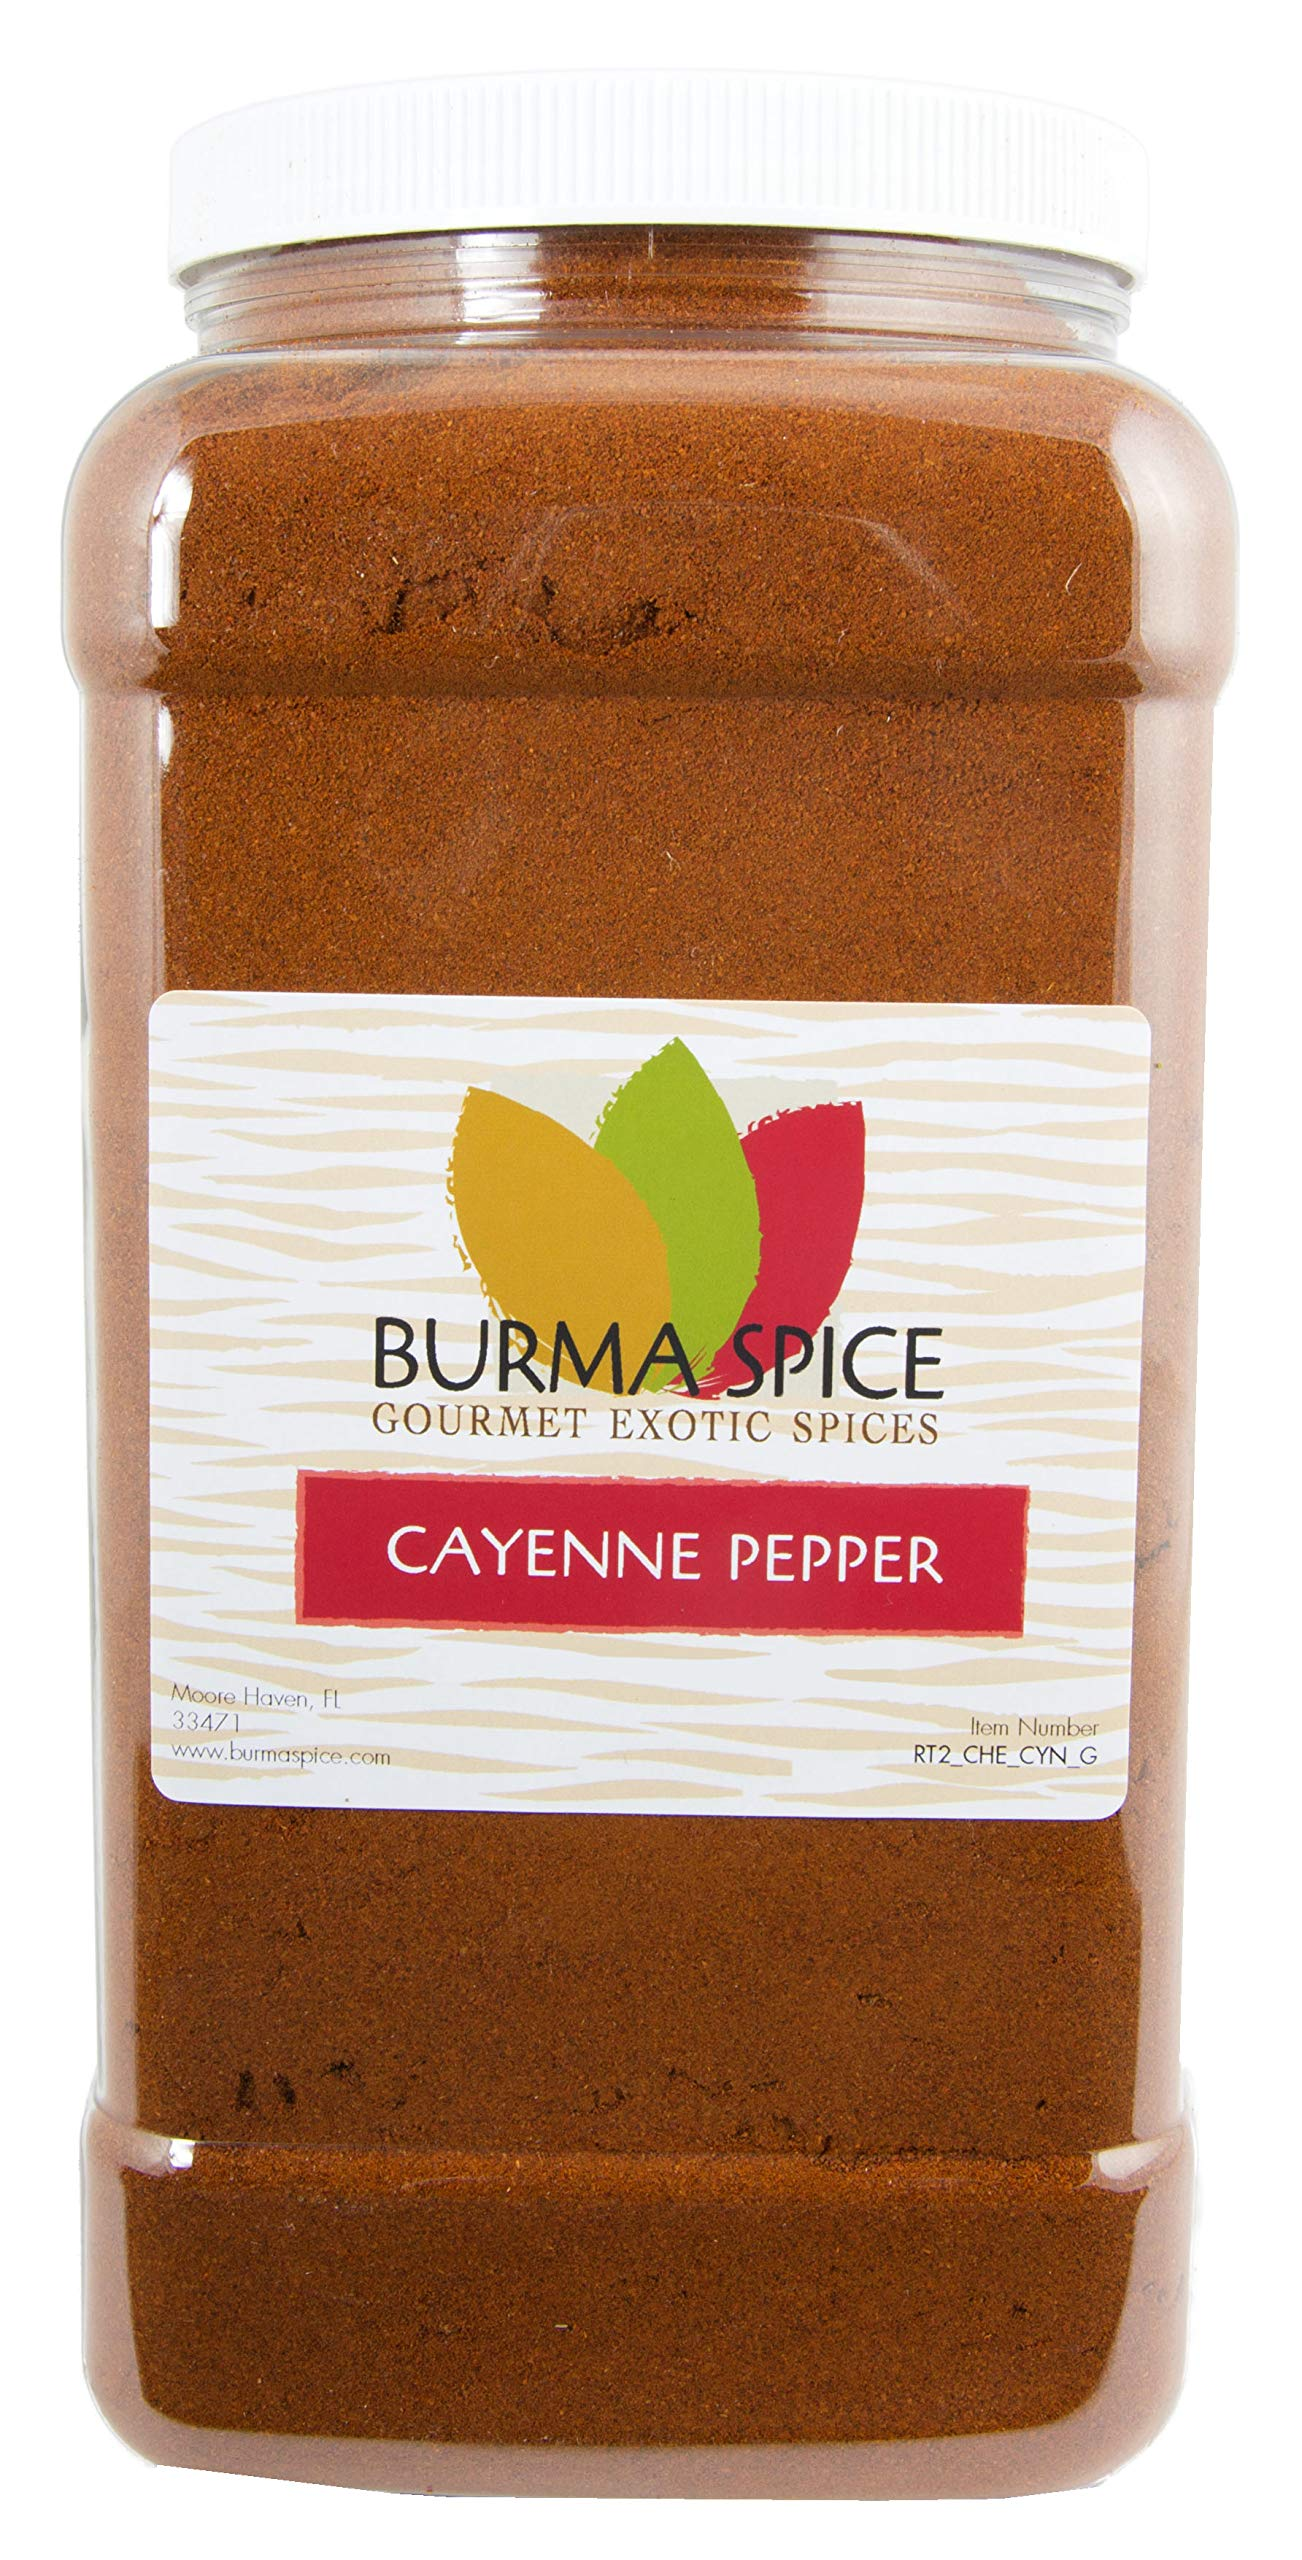 Ground Cayenne Pepper : SOME LIKE IT HOT! - This Cayenne pepper is hotter than most, its perfect to really kick it up a notch (75oz.)